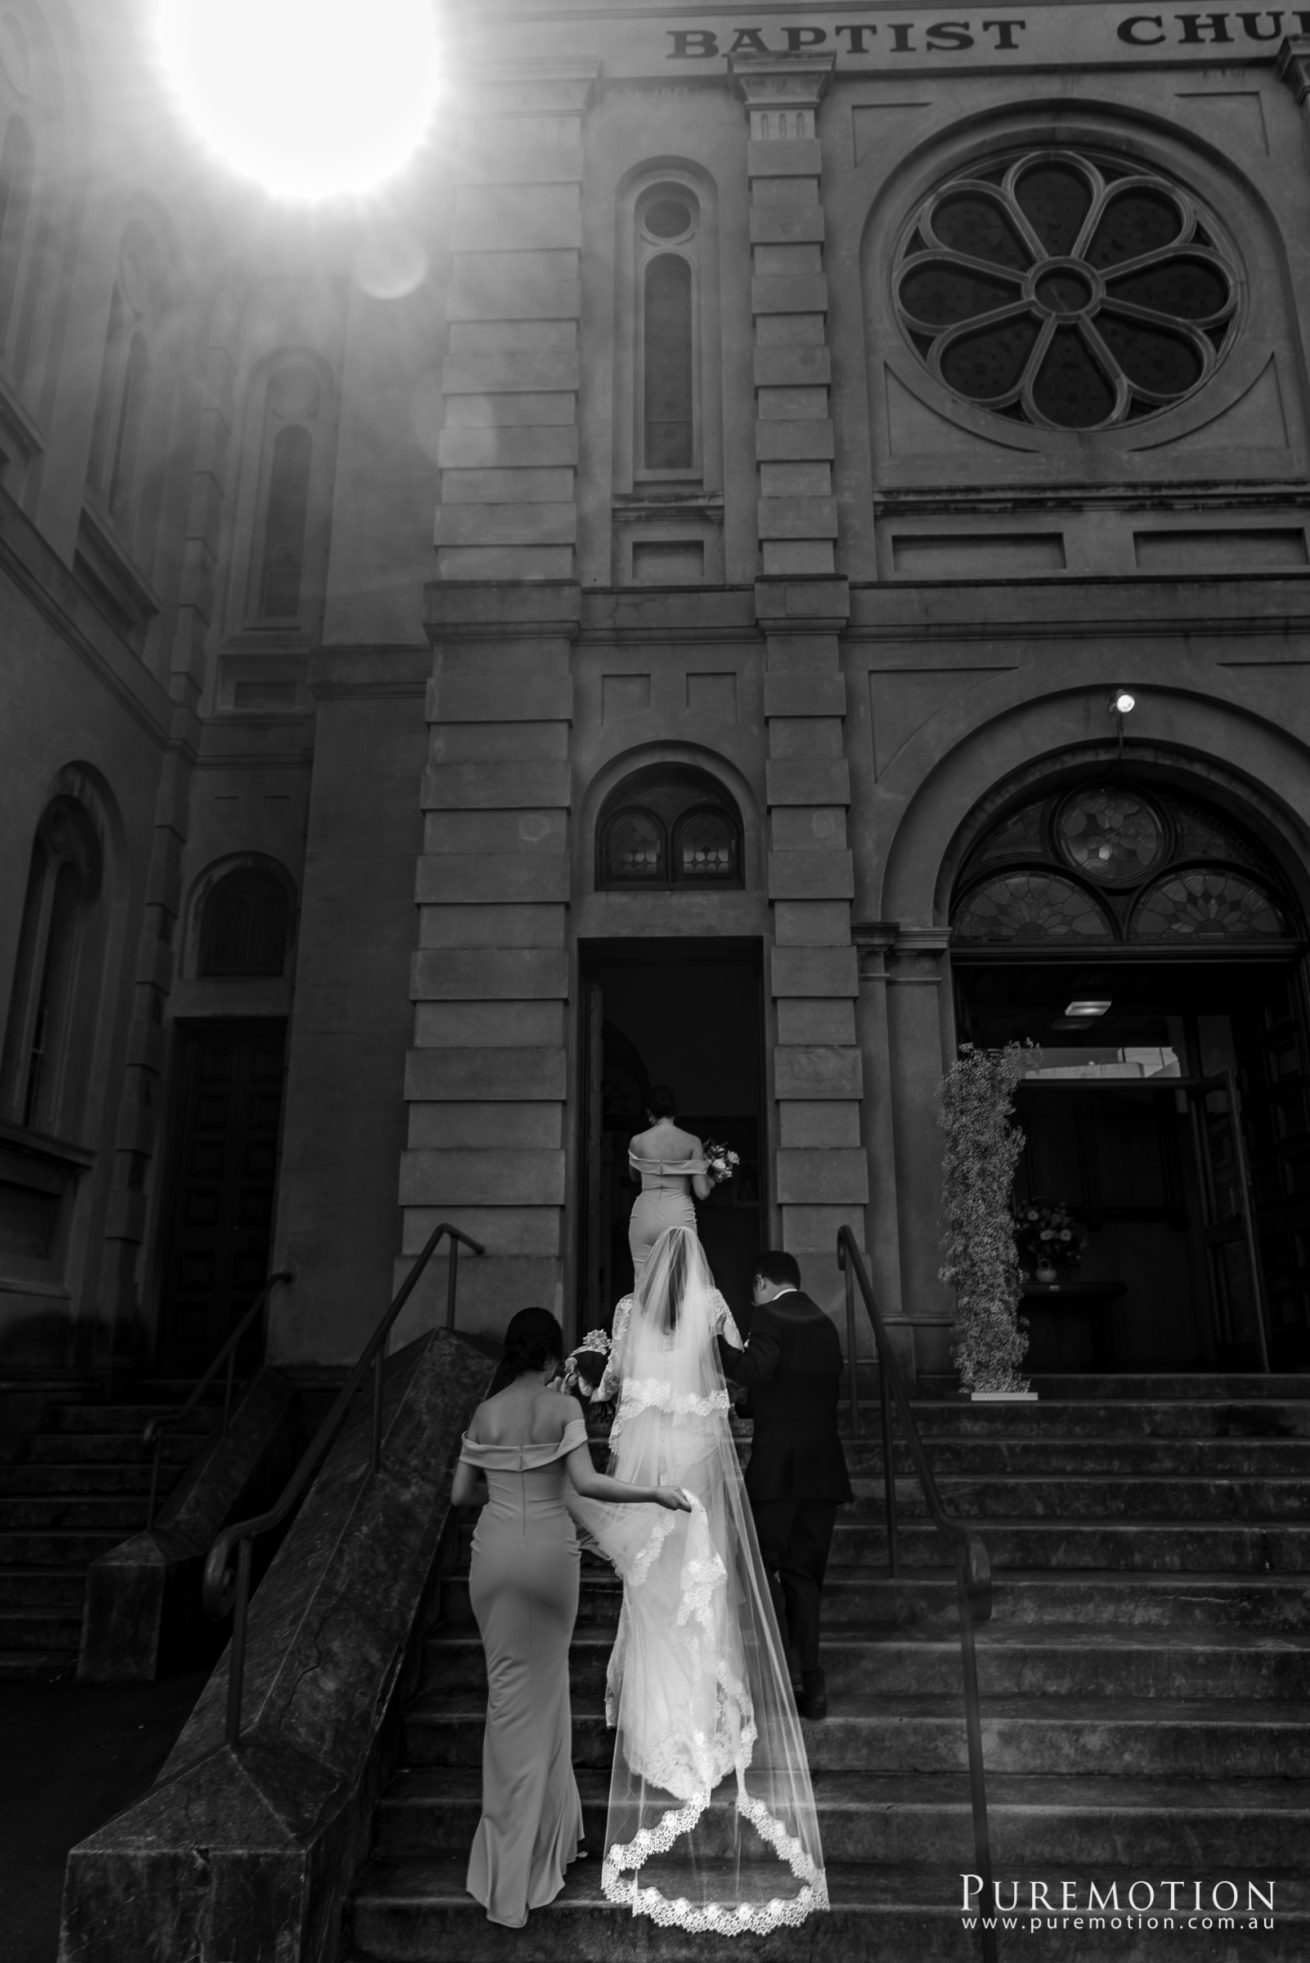 190413 Puremotion Wedding Photography Brisbane Tabernacle Baptist Church Blackbird Alex Huang PeggyAaron_post-0037